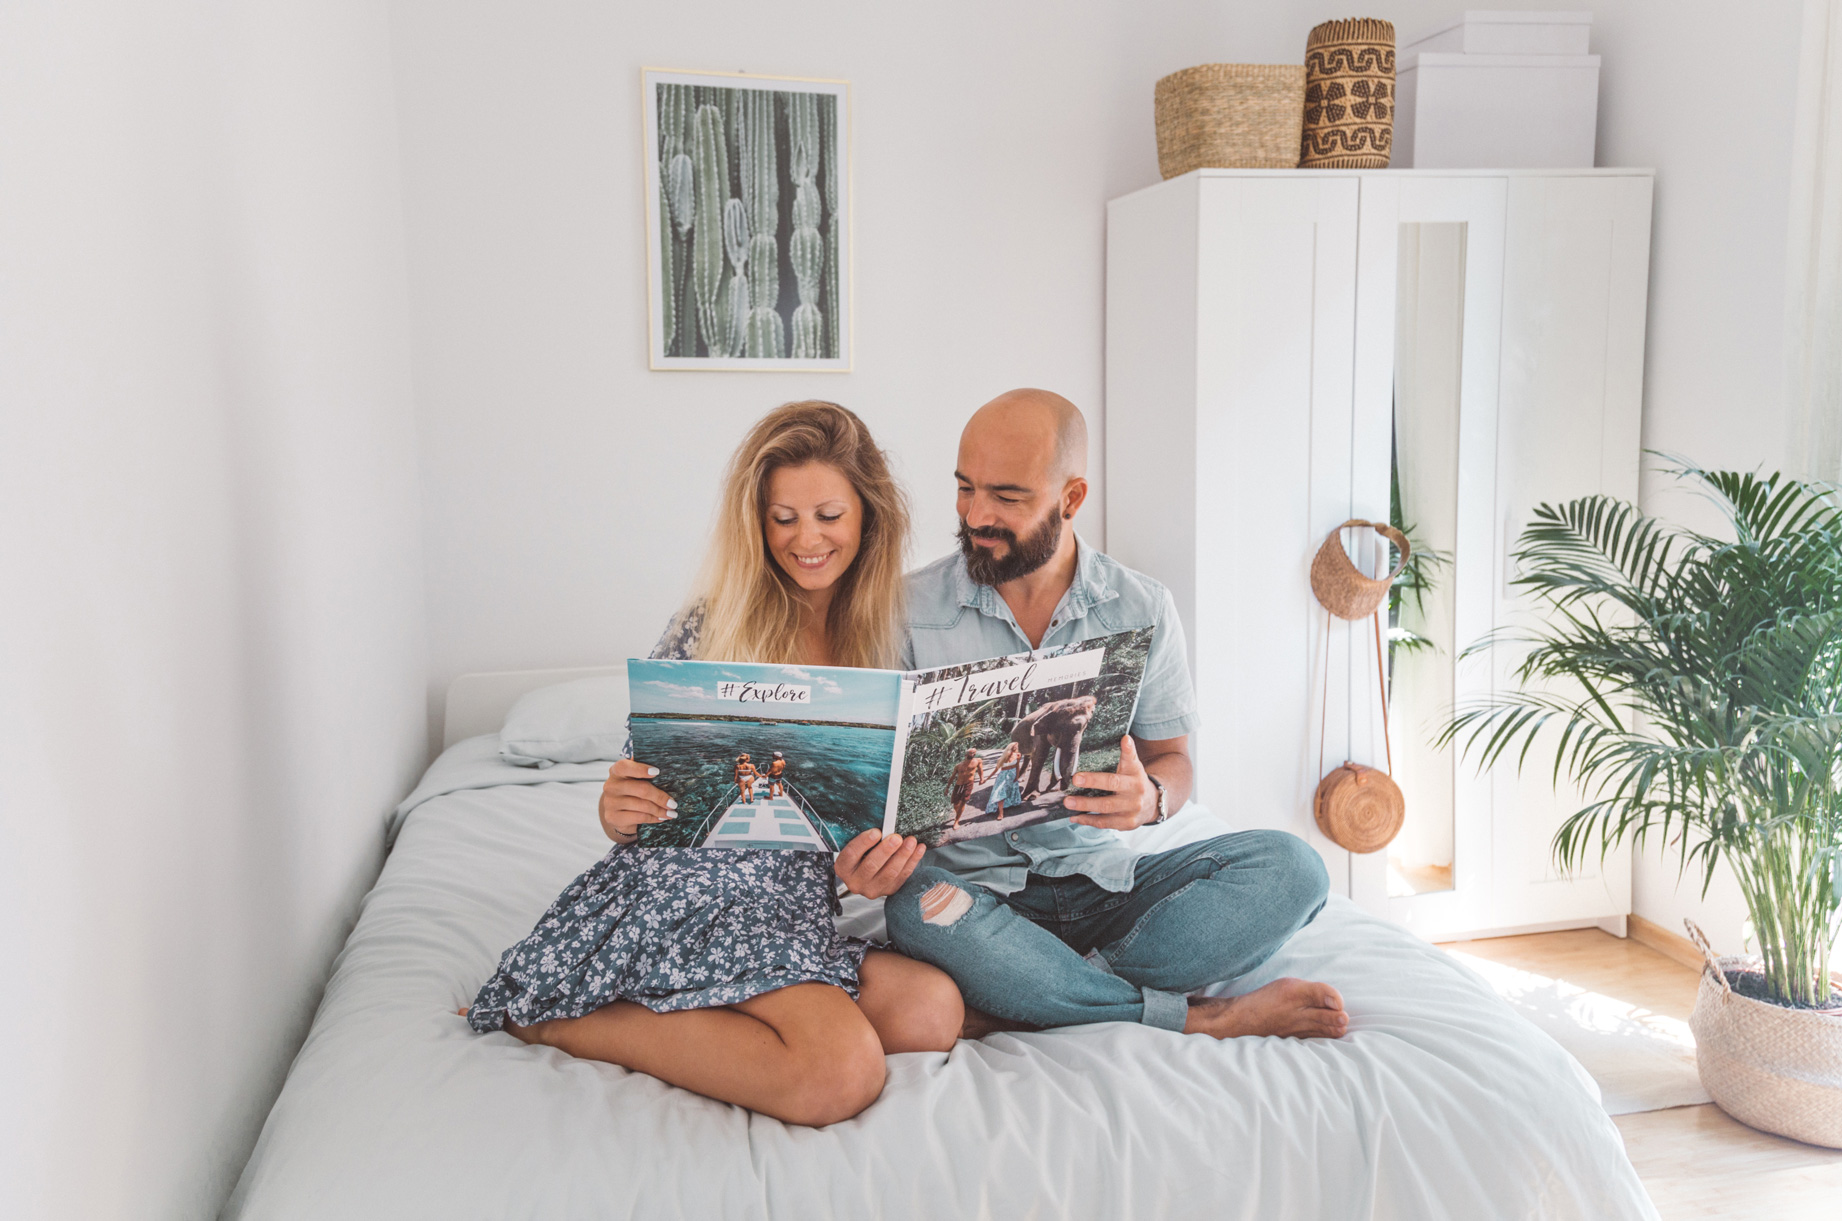 Create memories that last forever – How we did our first photo book